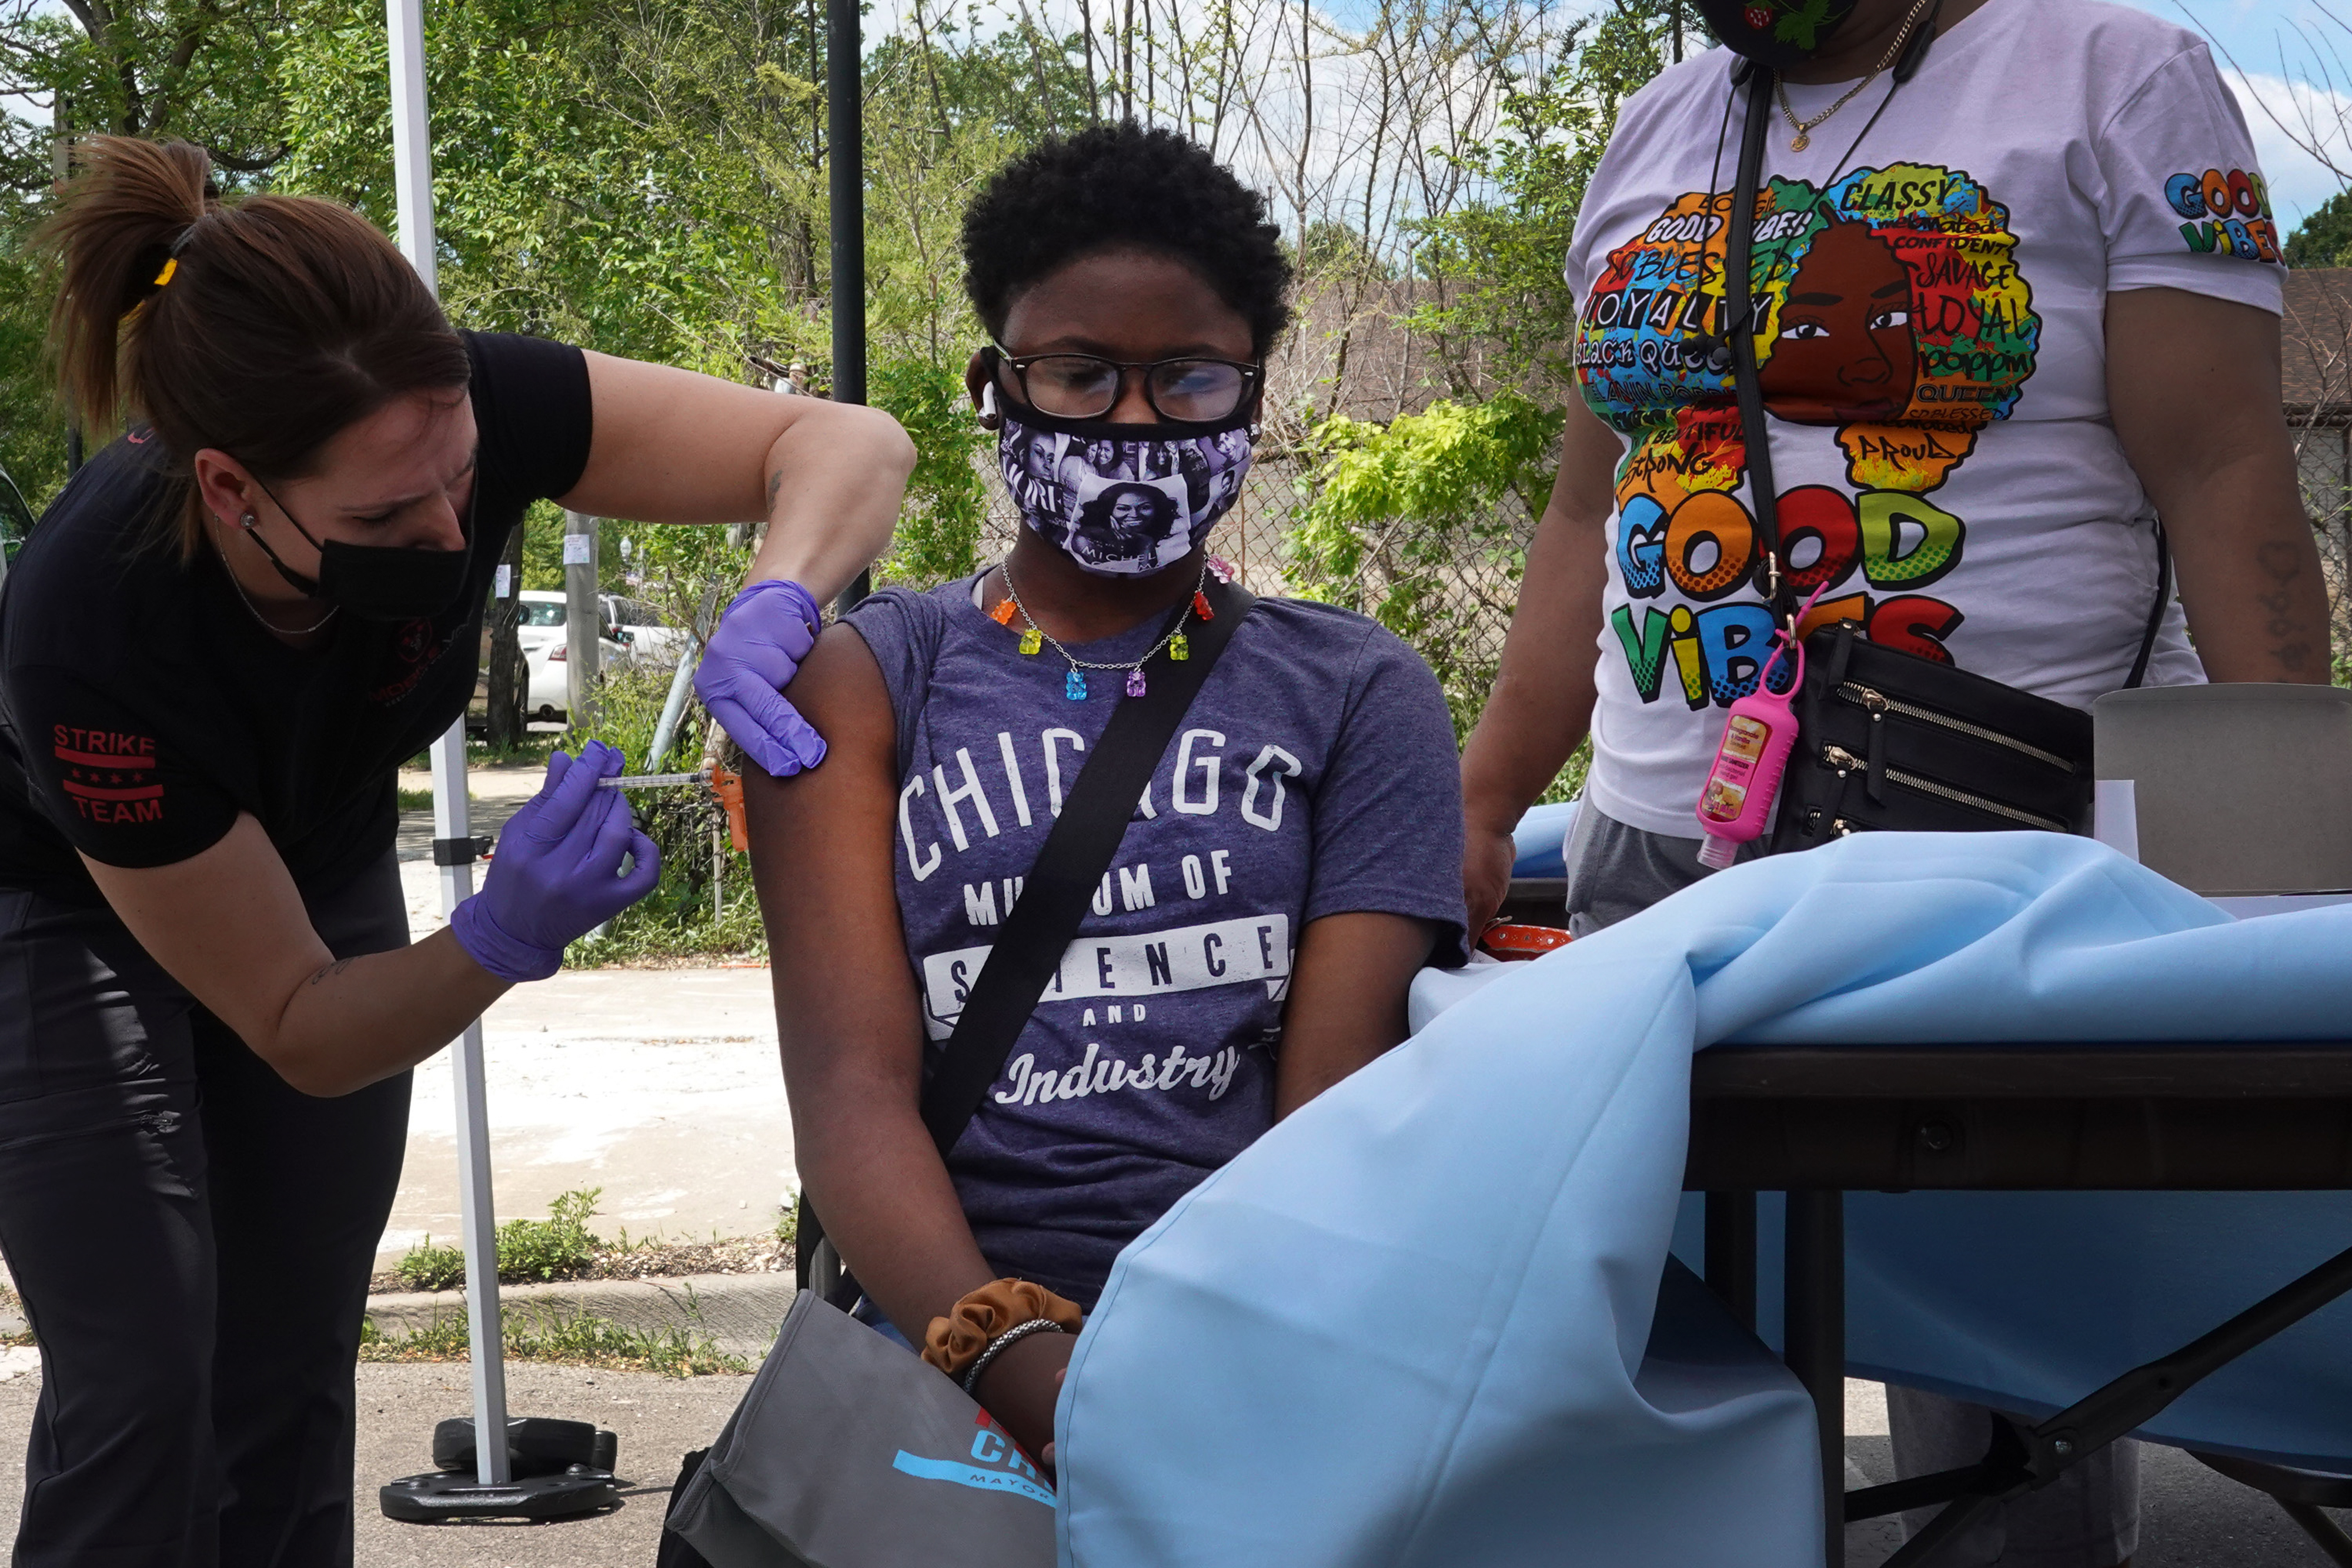 A girl wearing a Chicago shirt stands between two women, one of whom is giving the girl a dose of the COVID vaccine.